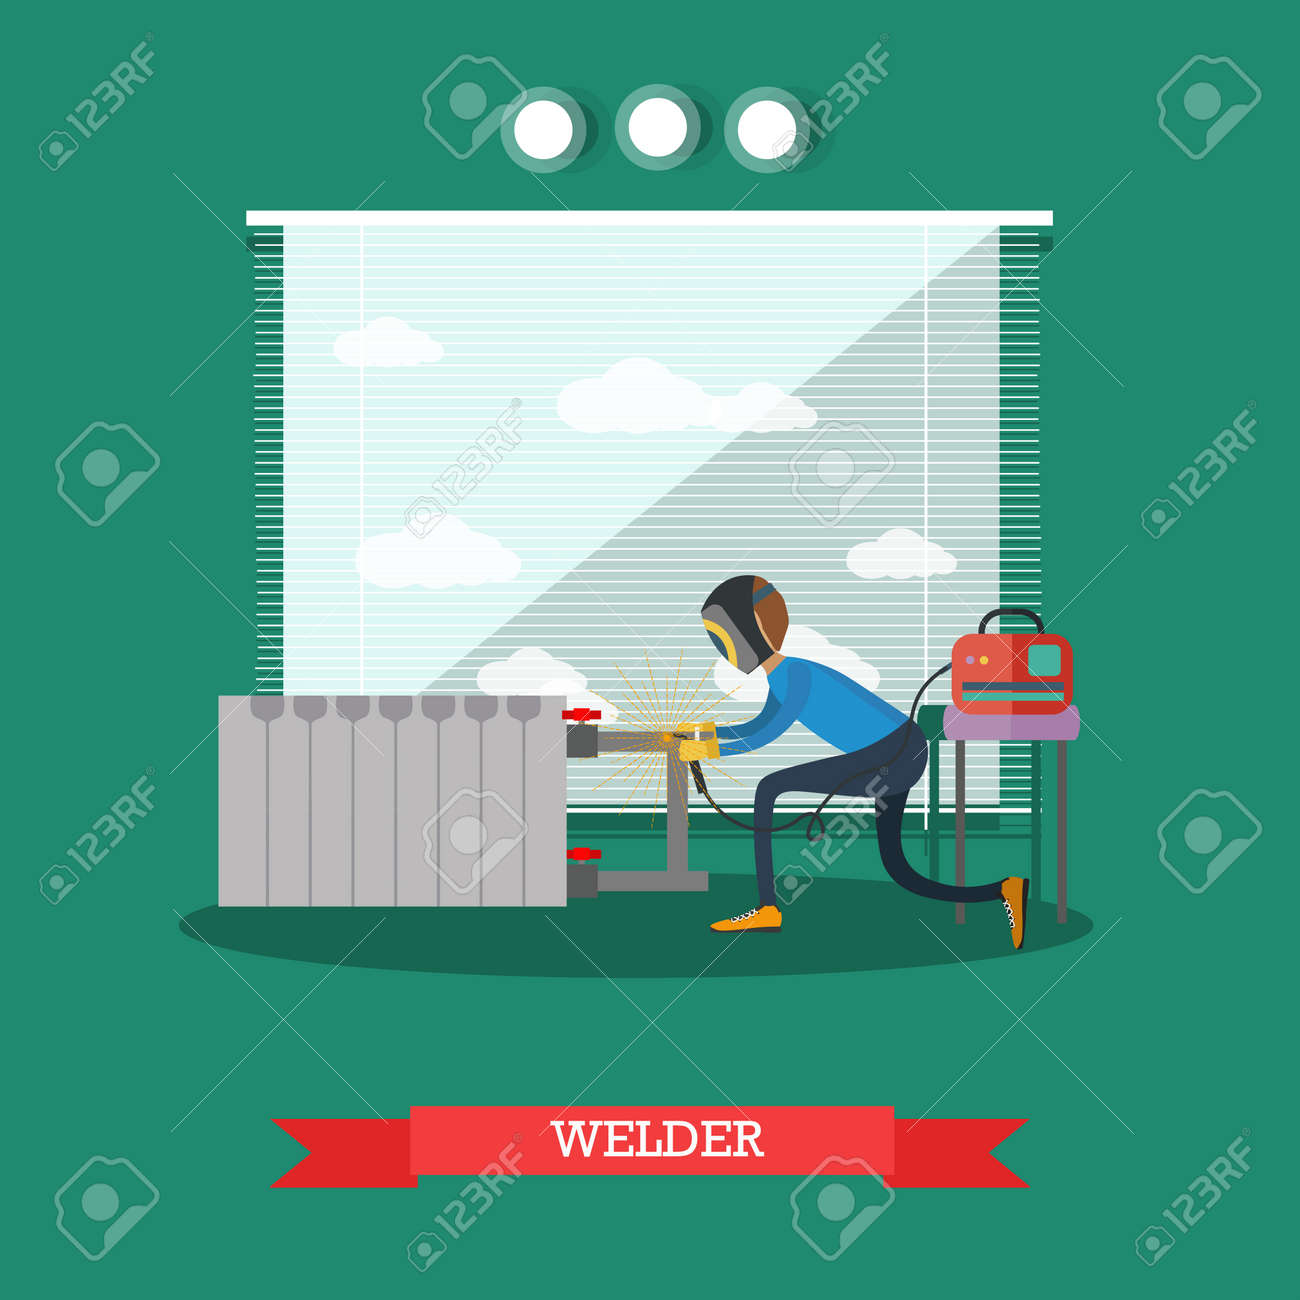 Vector Illustration Of Worker Assembling Or Repairing The Heating ...